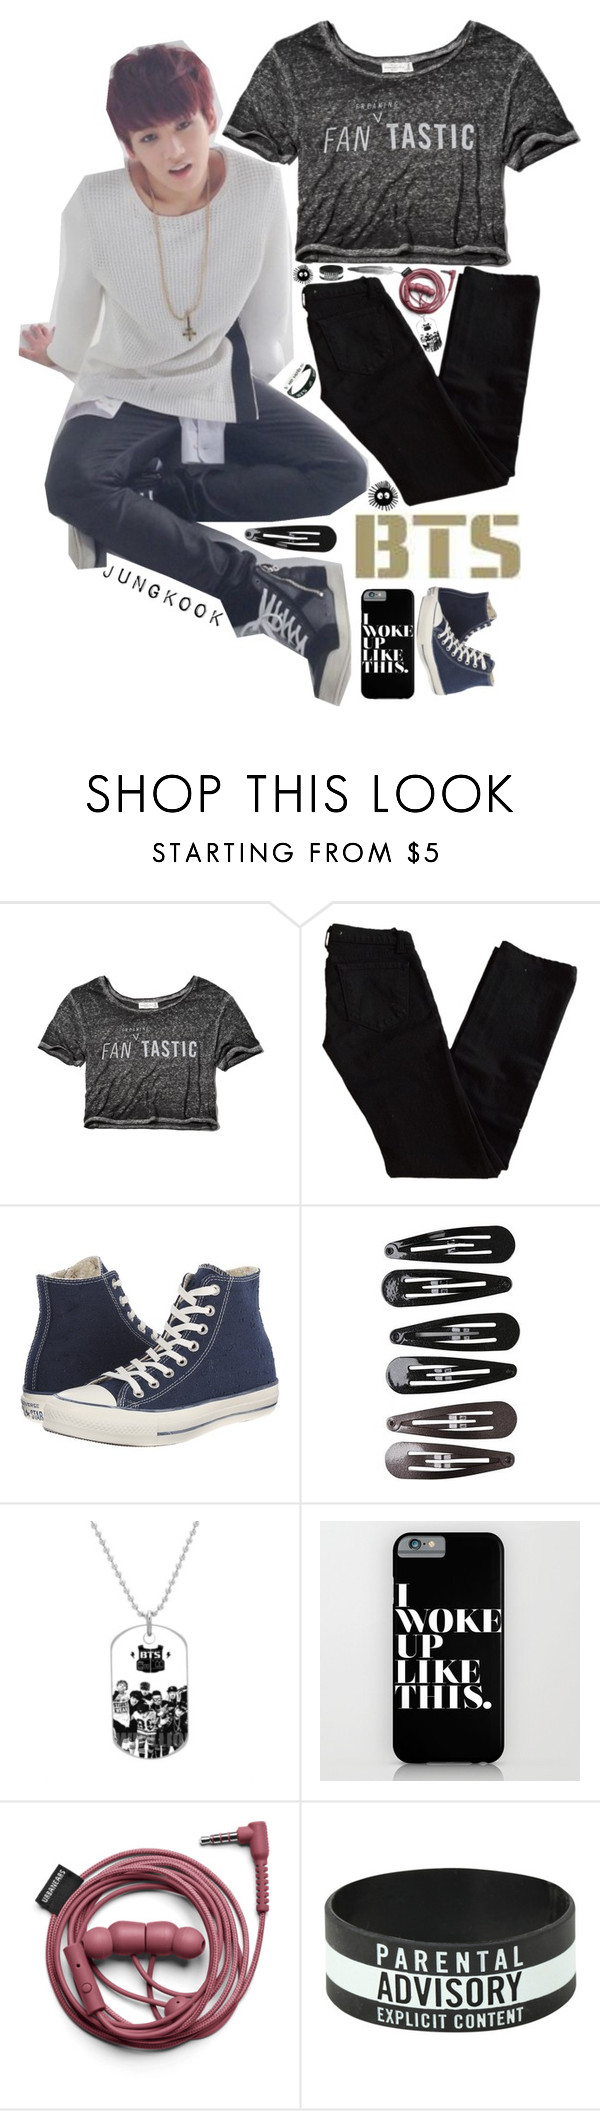 """jungkook ♥"" by highlandchild ❤ liked on Polyvore featuring Abercrombie & Fitch, J Brand, Converse, Clips, Retrò, kpop, bts, BangtanBoys and jungkook"